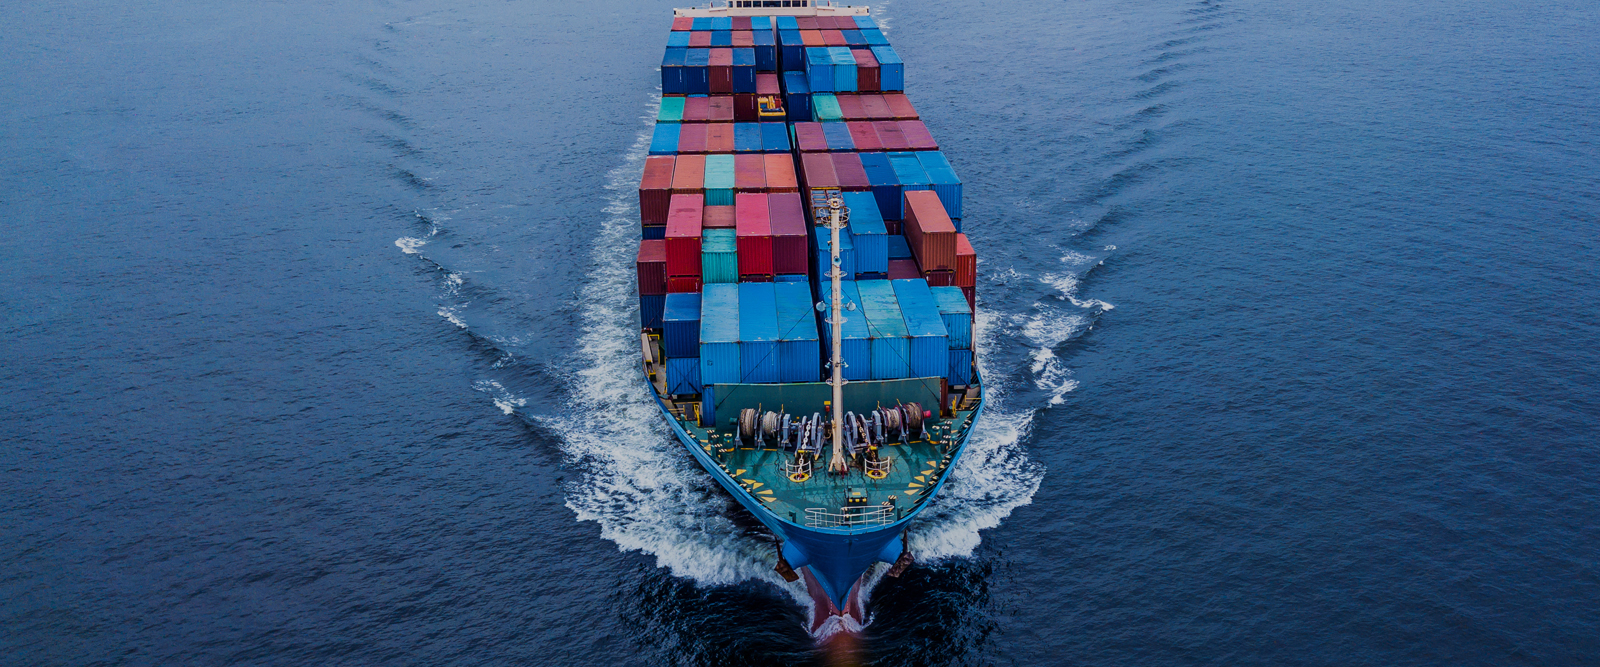 Cargo ship carrying containers one the ocean